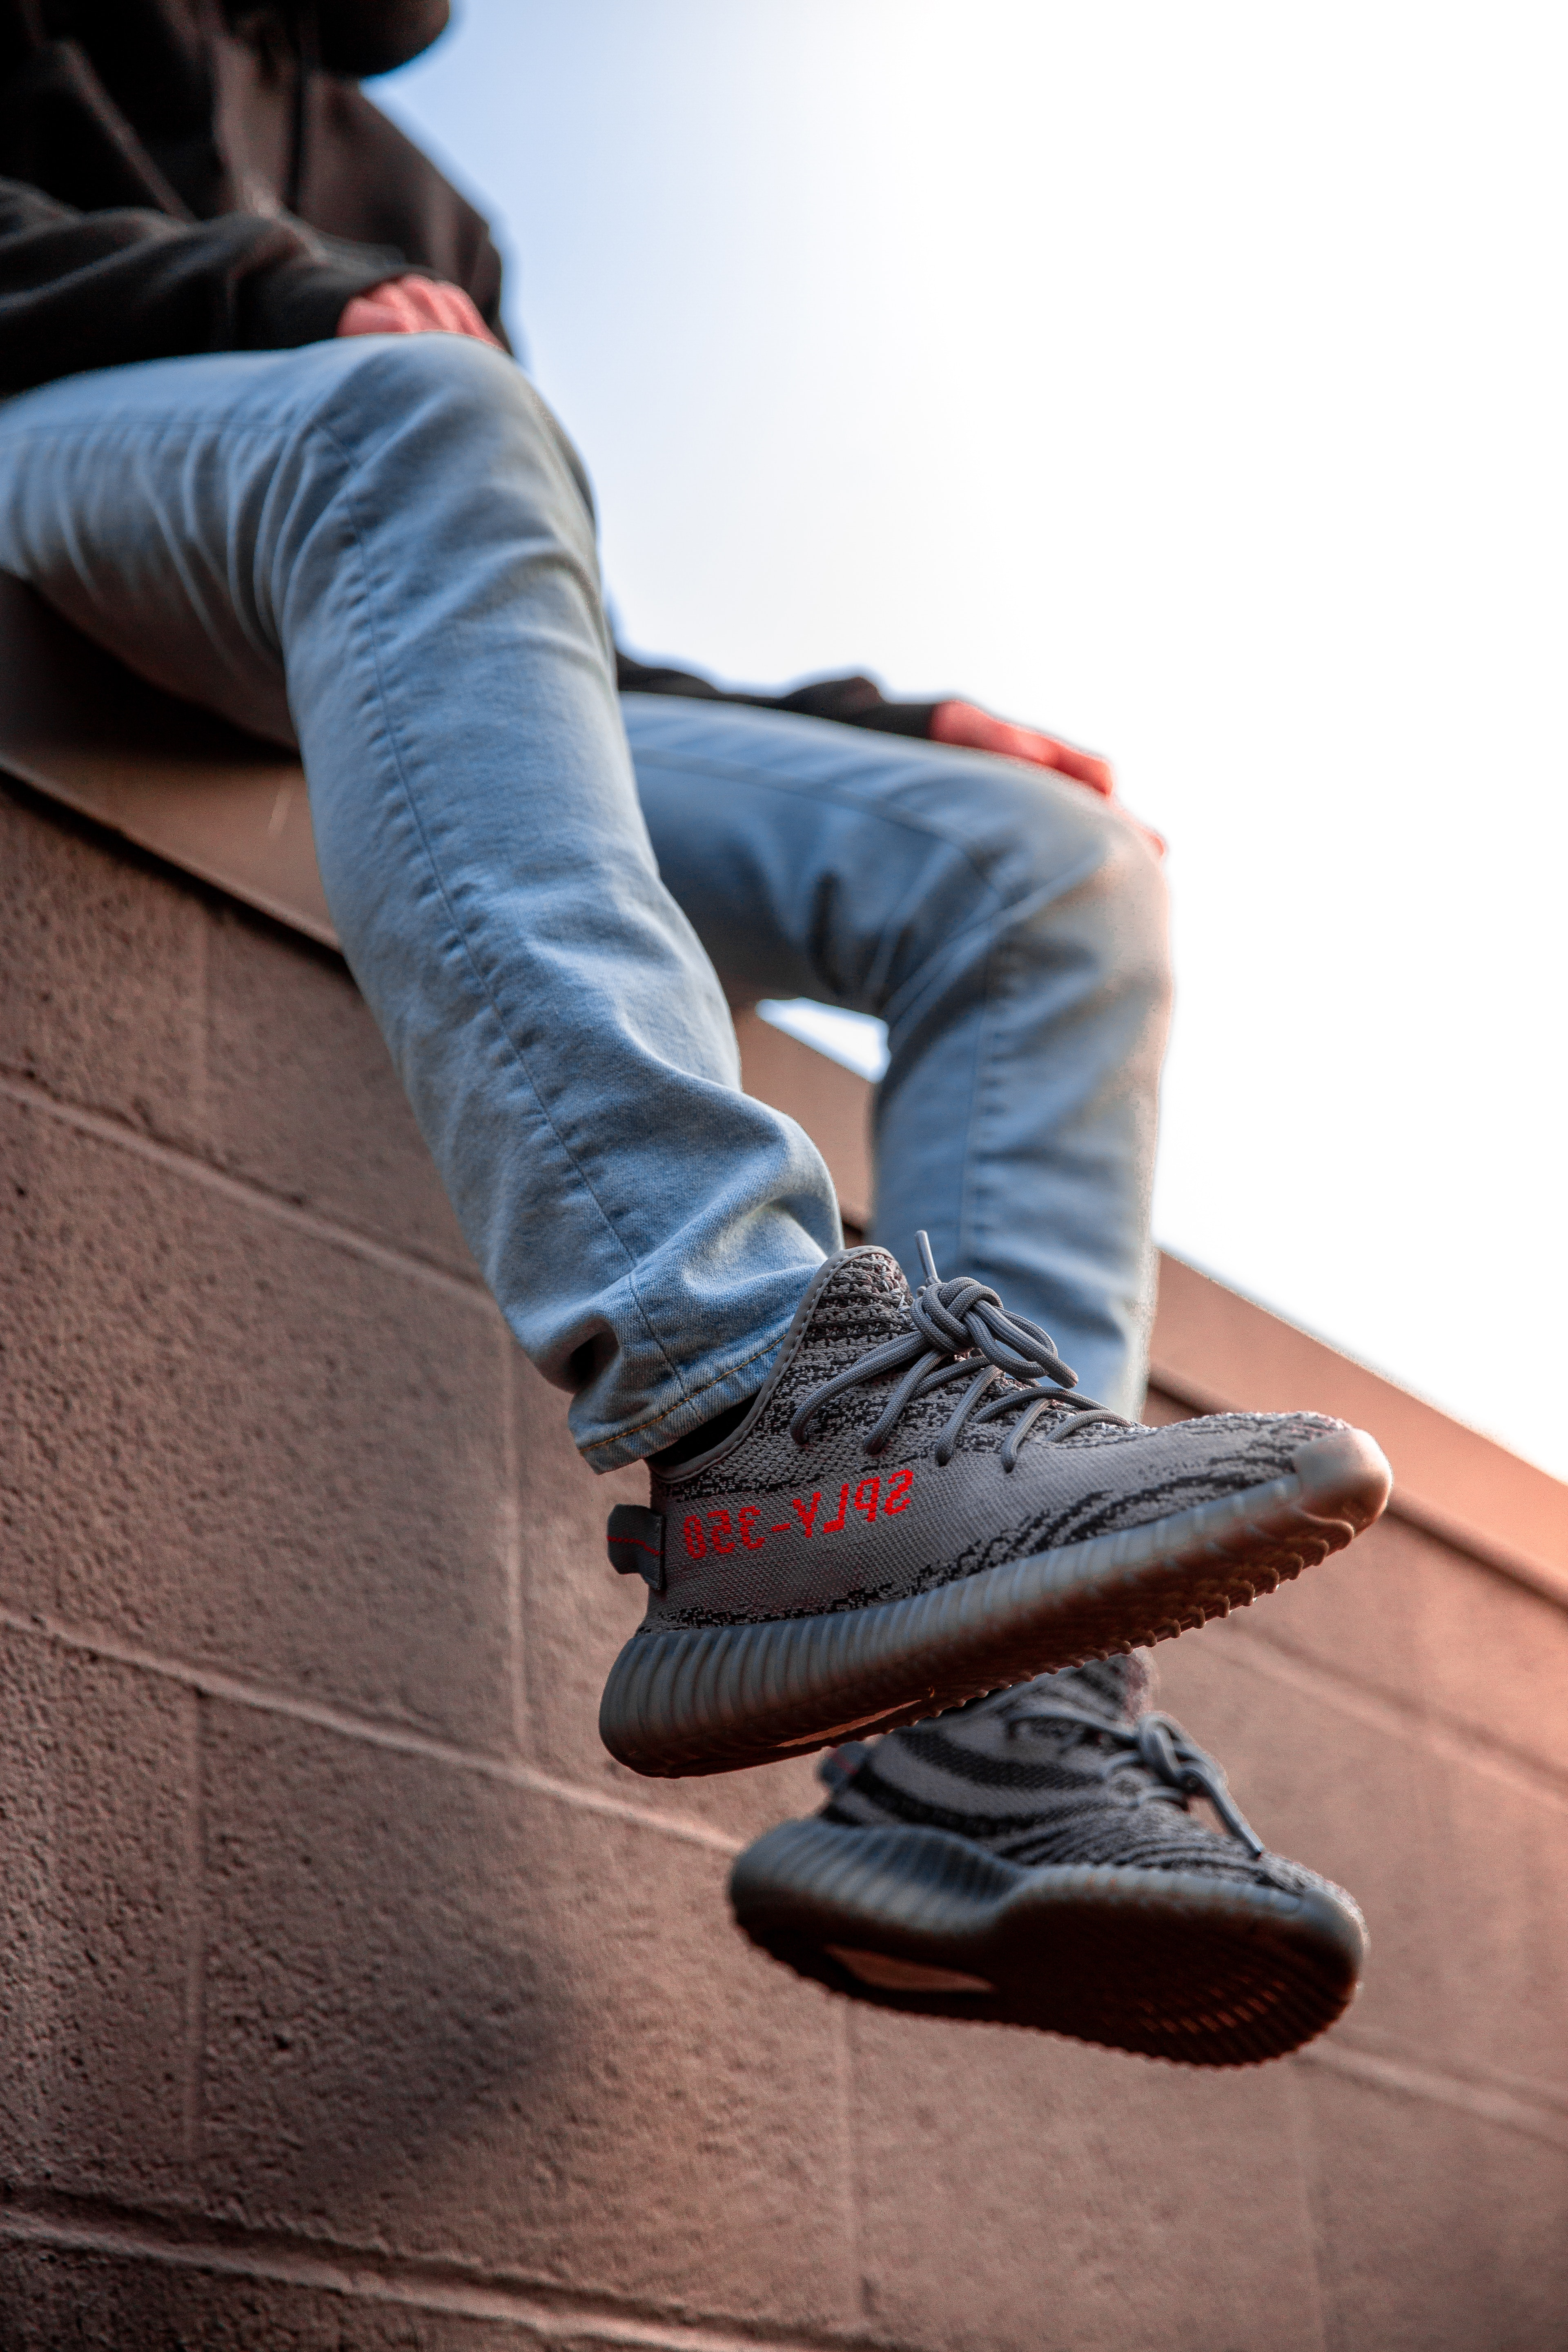 760f653b262ce Person Wearing Adidas Yeezy Boost Shoes · Free Stock Photo